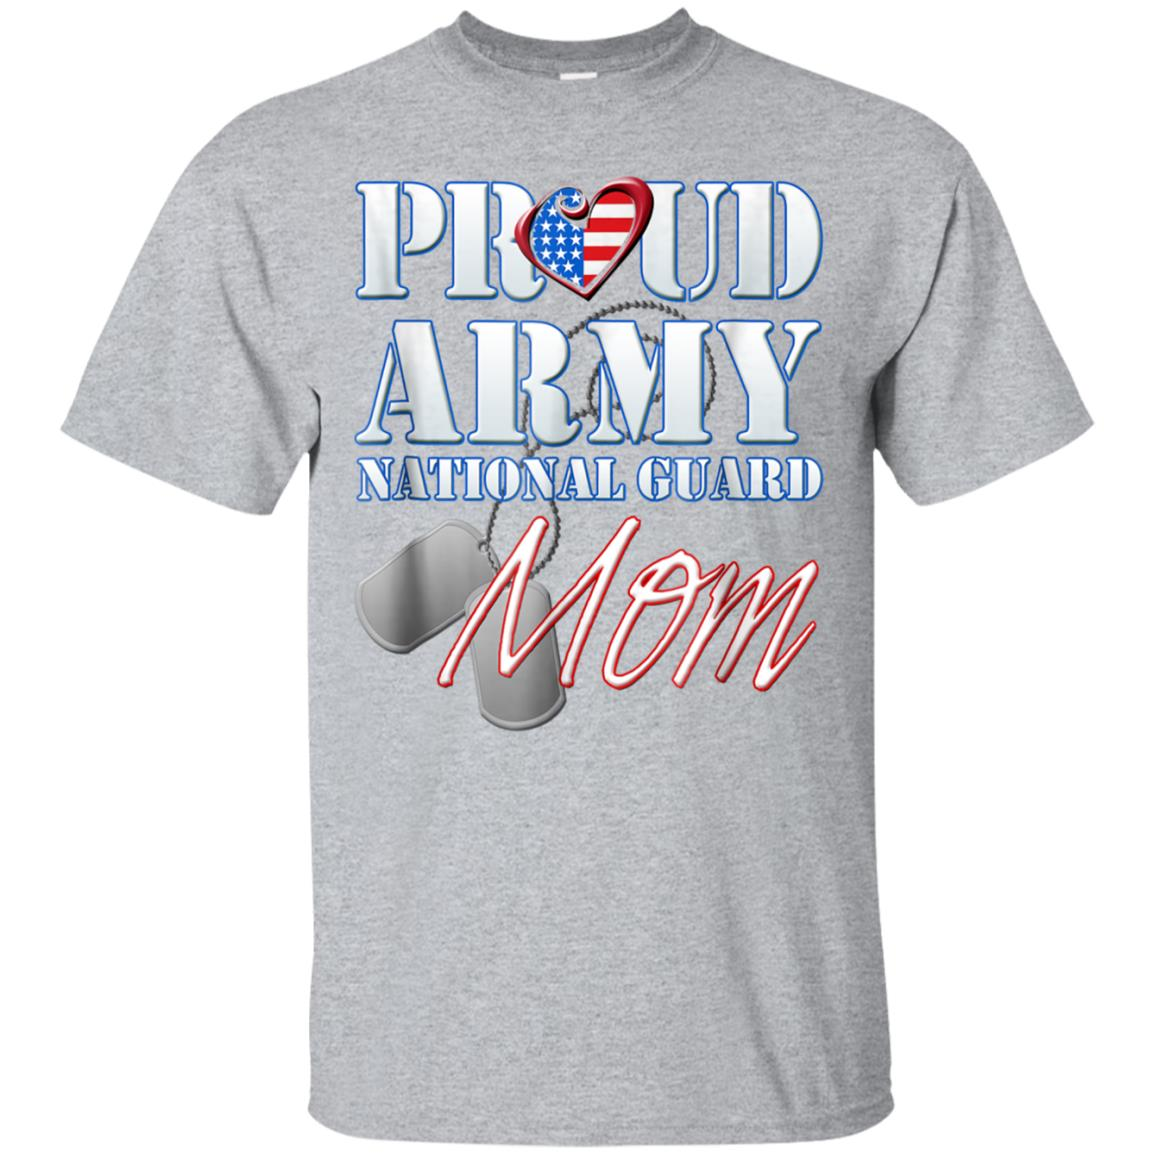 Proud Army National Guard Mom USA Heart Shirt Mothers Day 99promocode